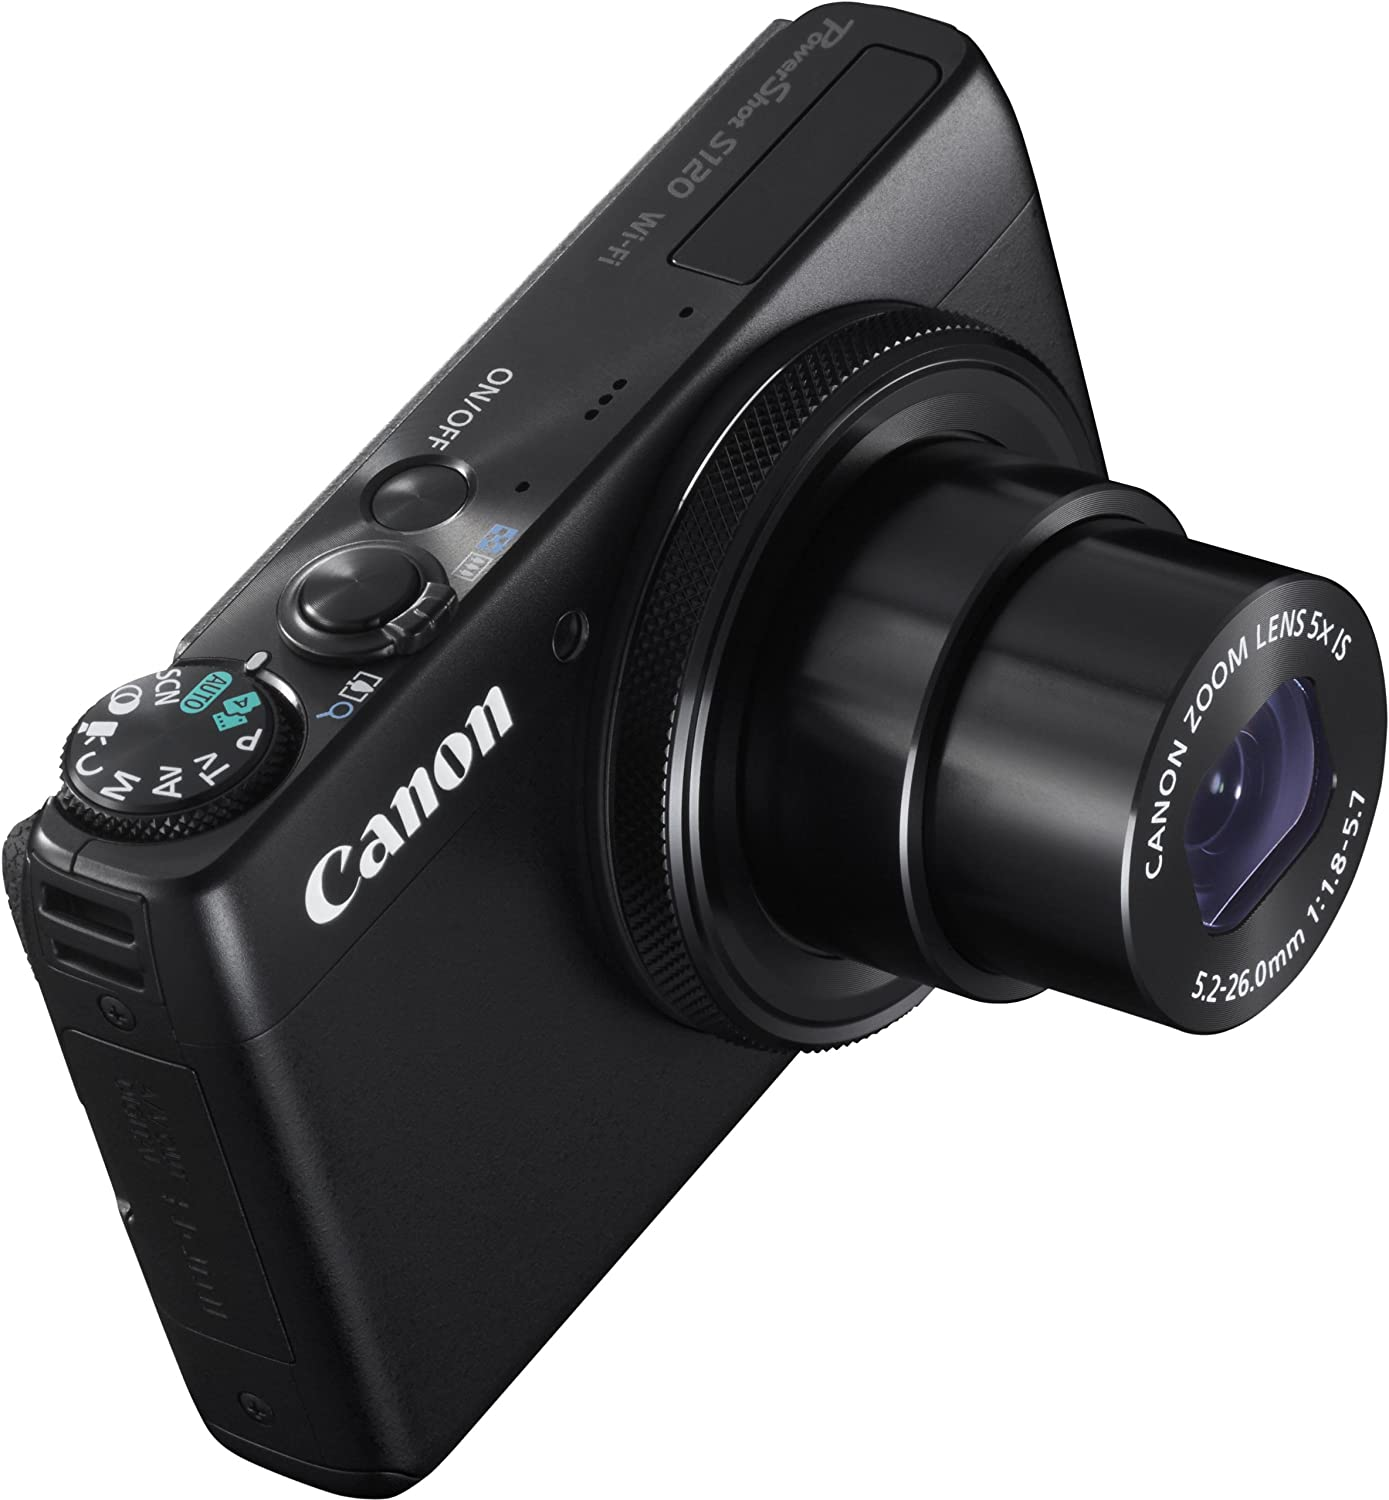 Canon Powershot S120 Camera Black 3 Inch Touch Lcd Amazon Co Uk Camera Photo